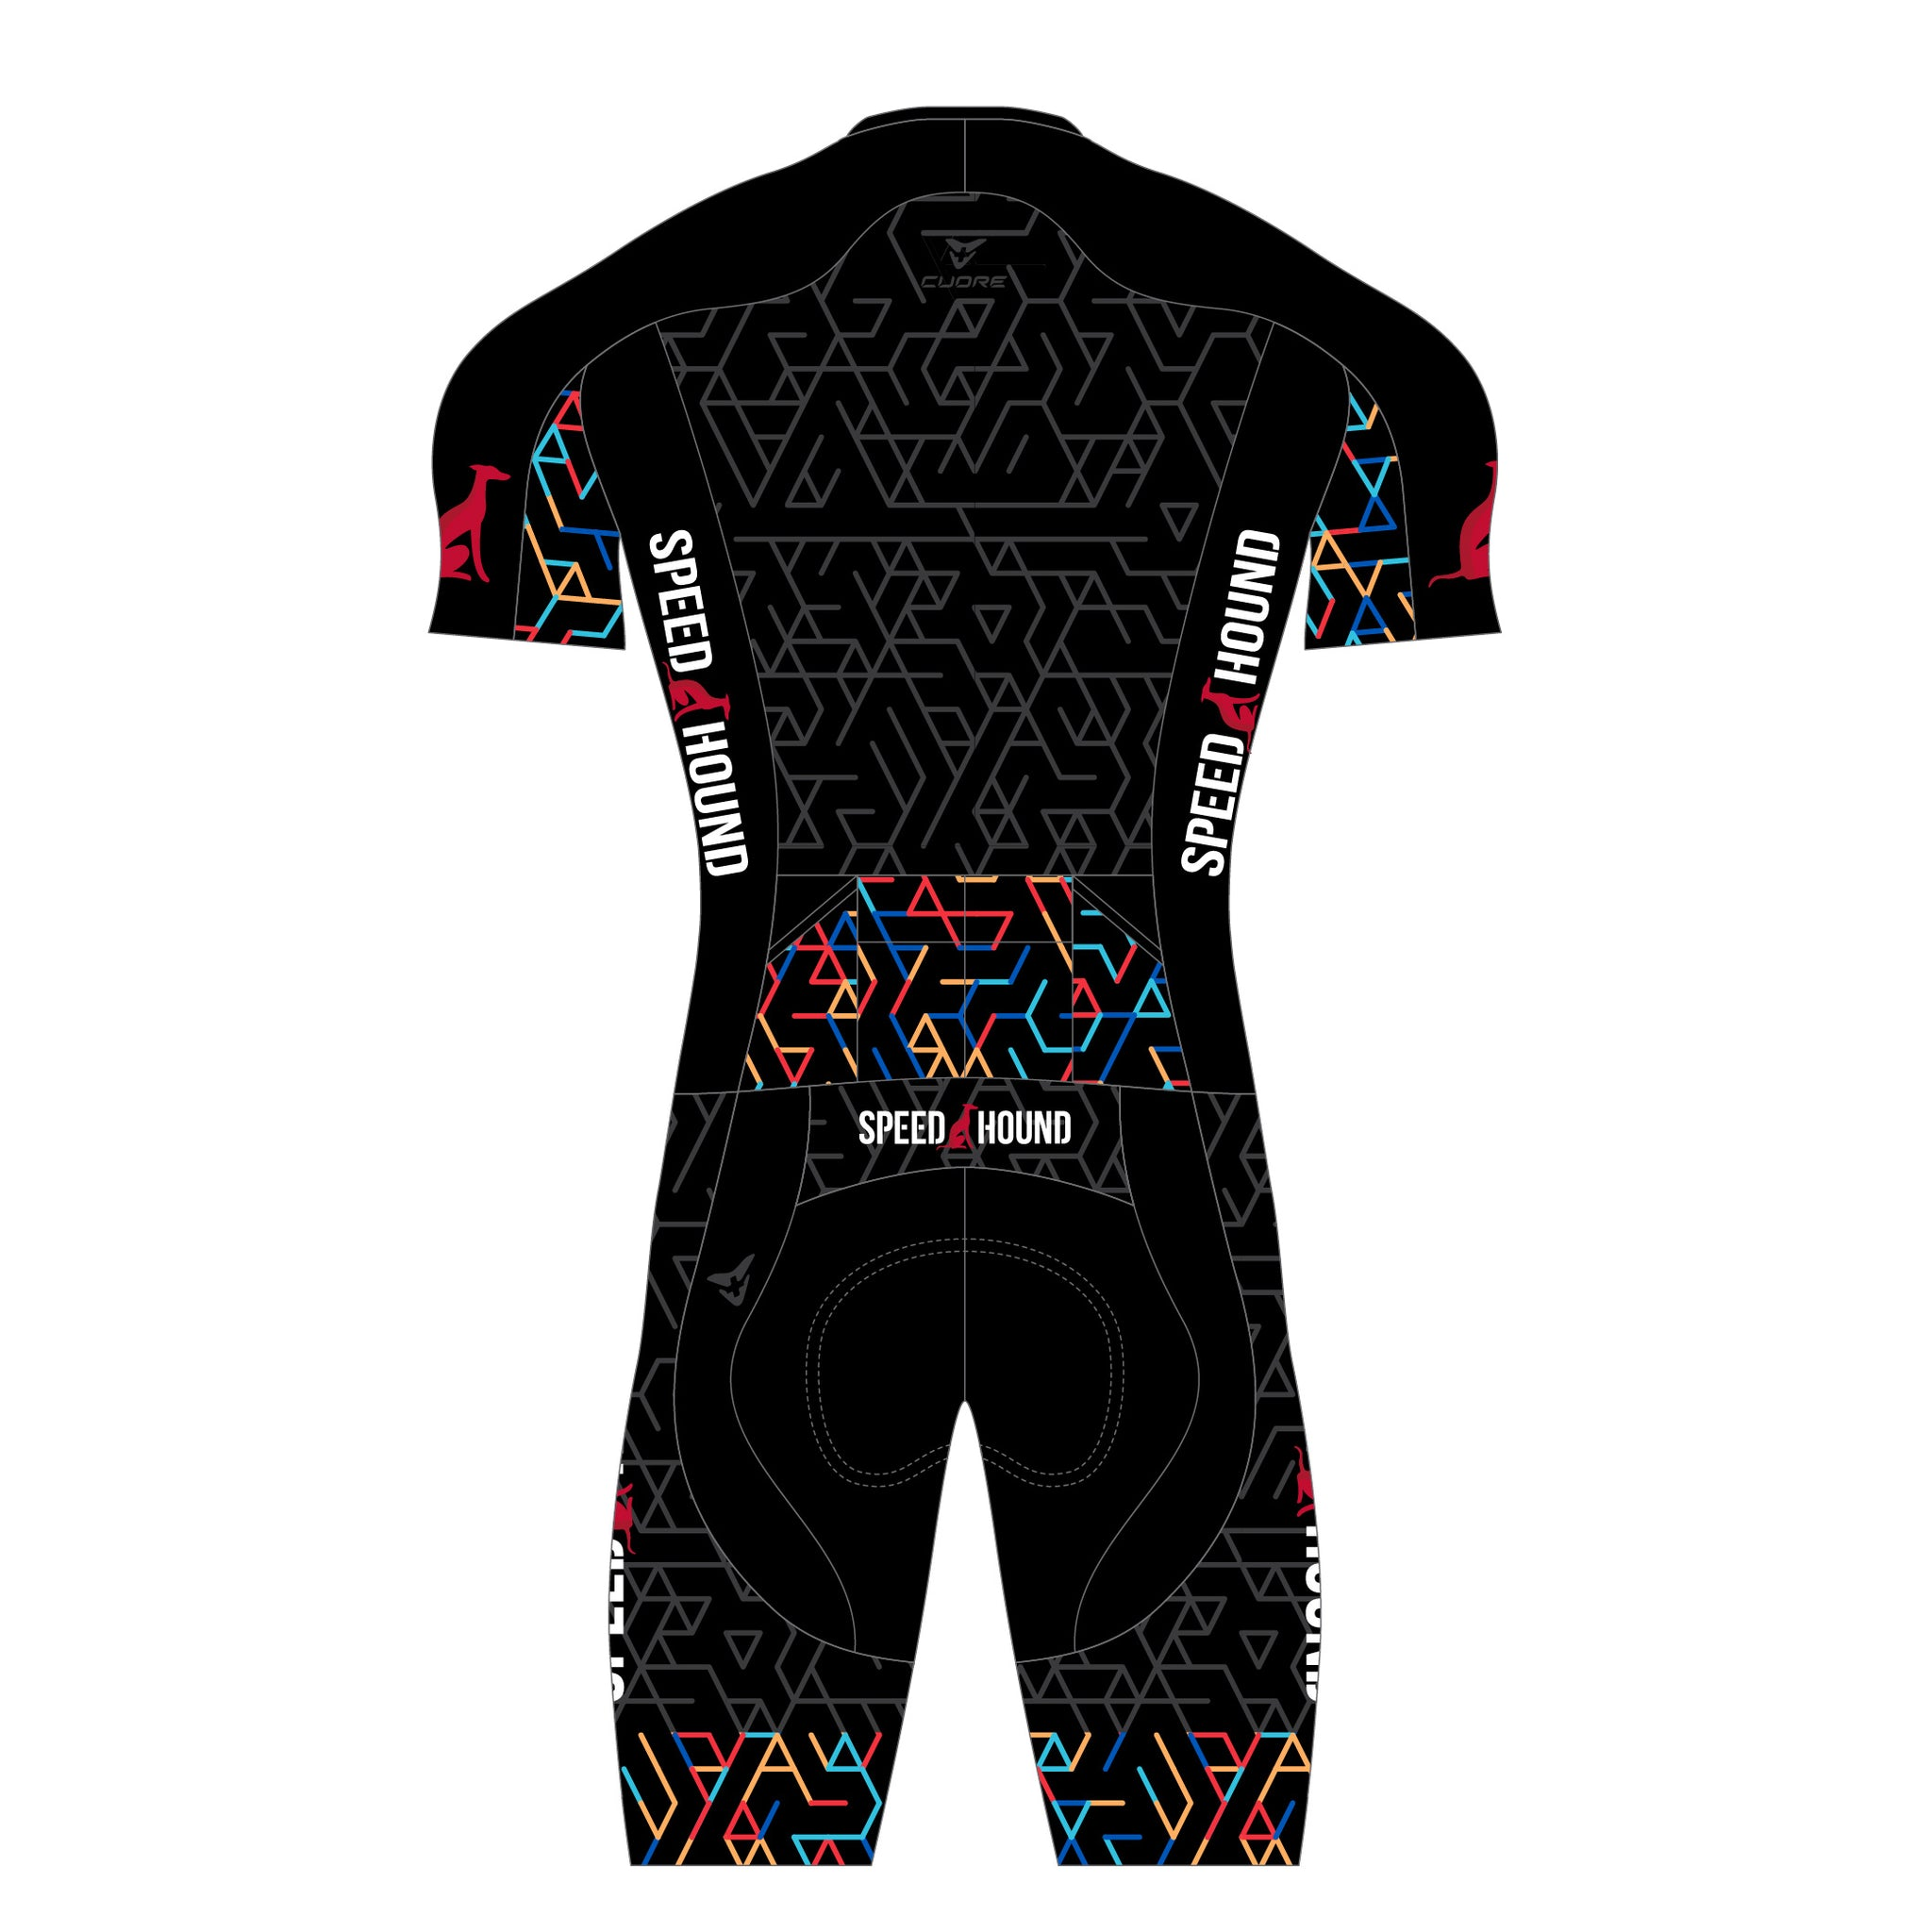 Speed Hound Limited Edition Mission Possible Speedsuit